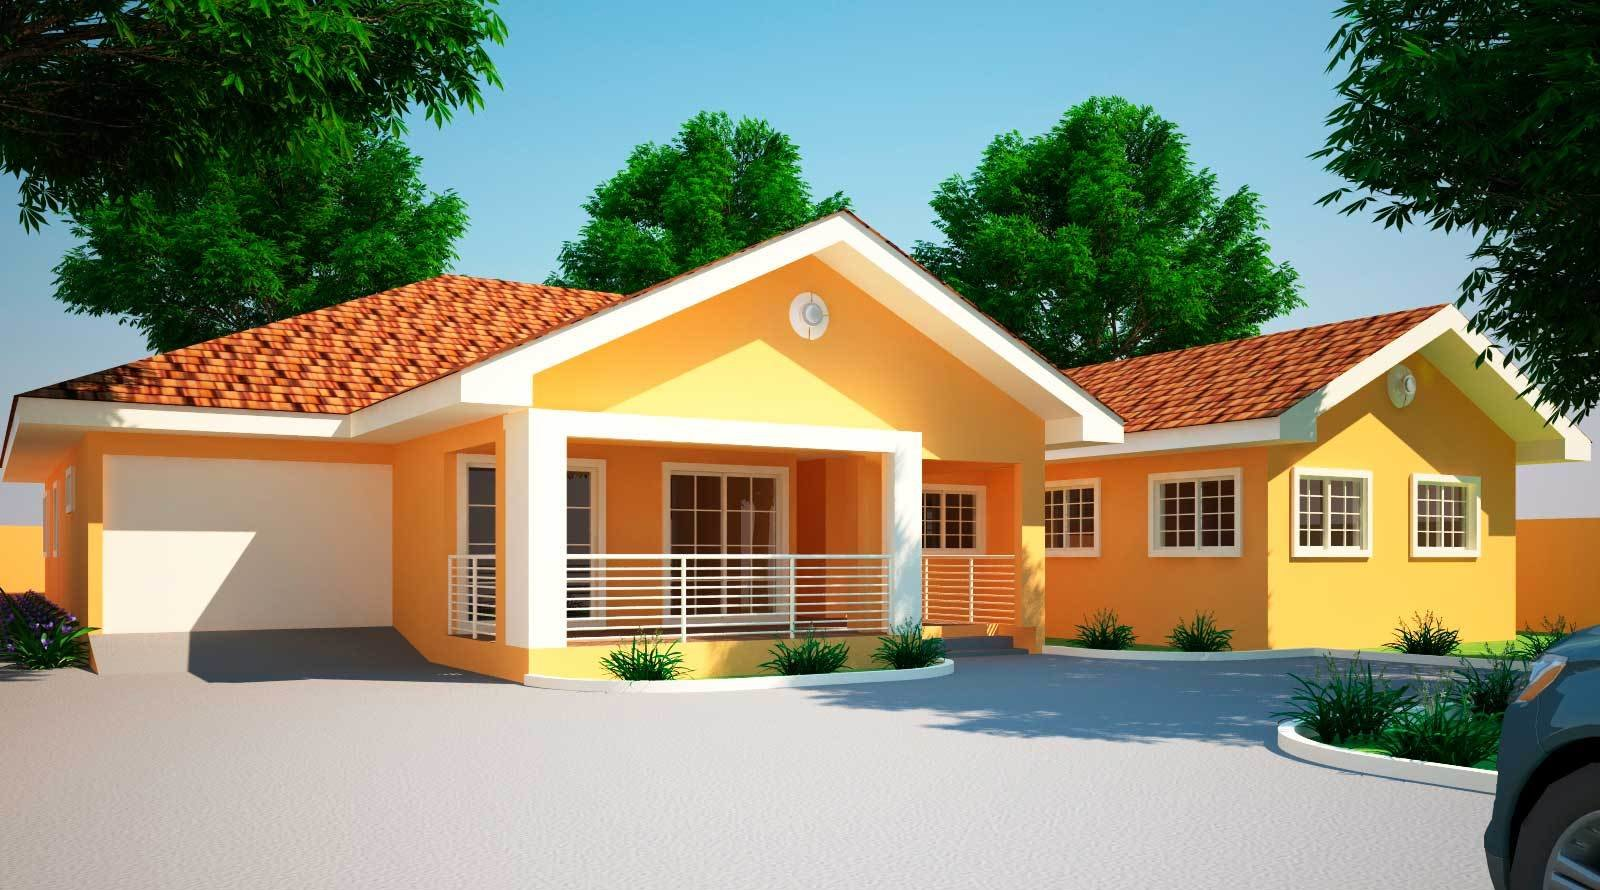 Best House Plans Ghana Jonat 4 Bedroom House Plan In Ghana With Pictures